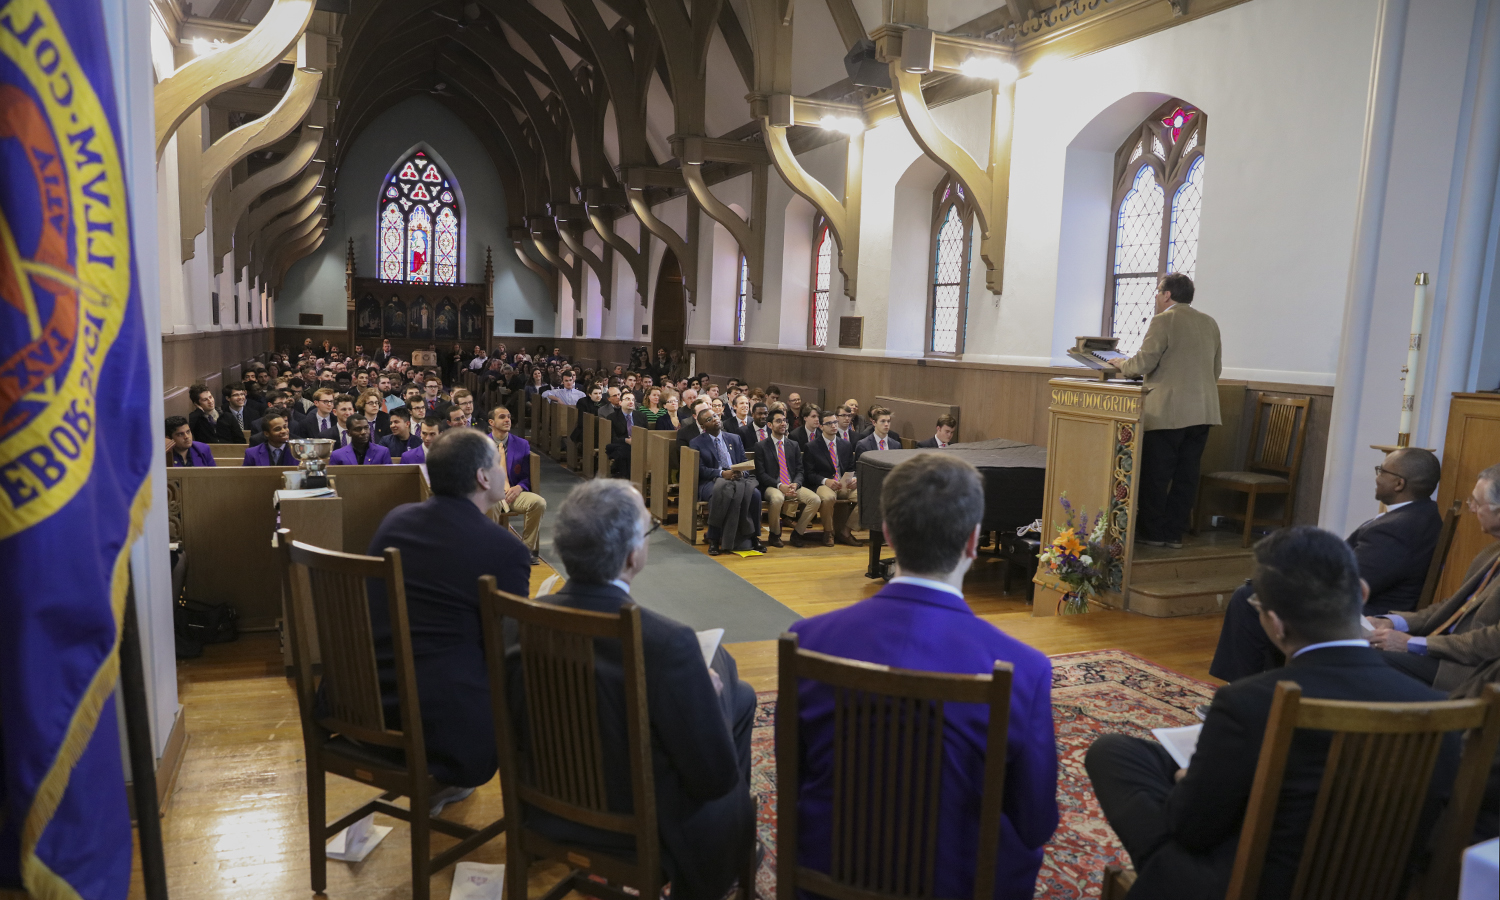 Students, faculty and staff gather in St. John's Chapel for the annual Hobart College Charter Day celebration.